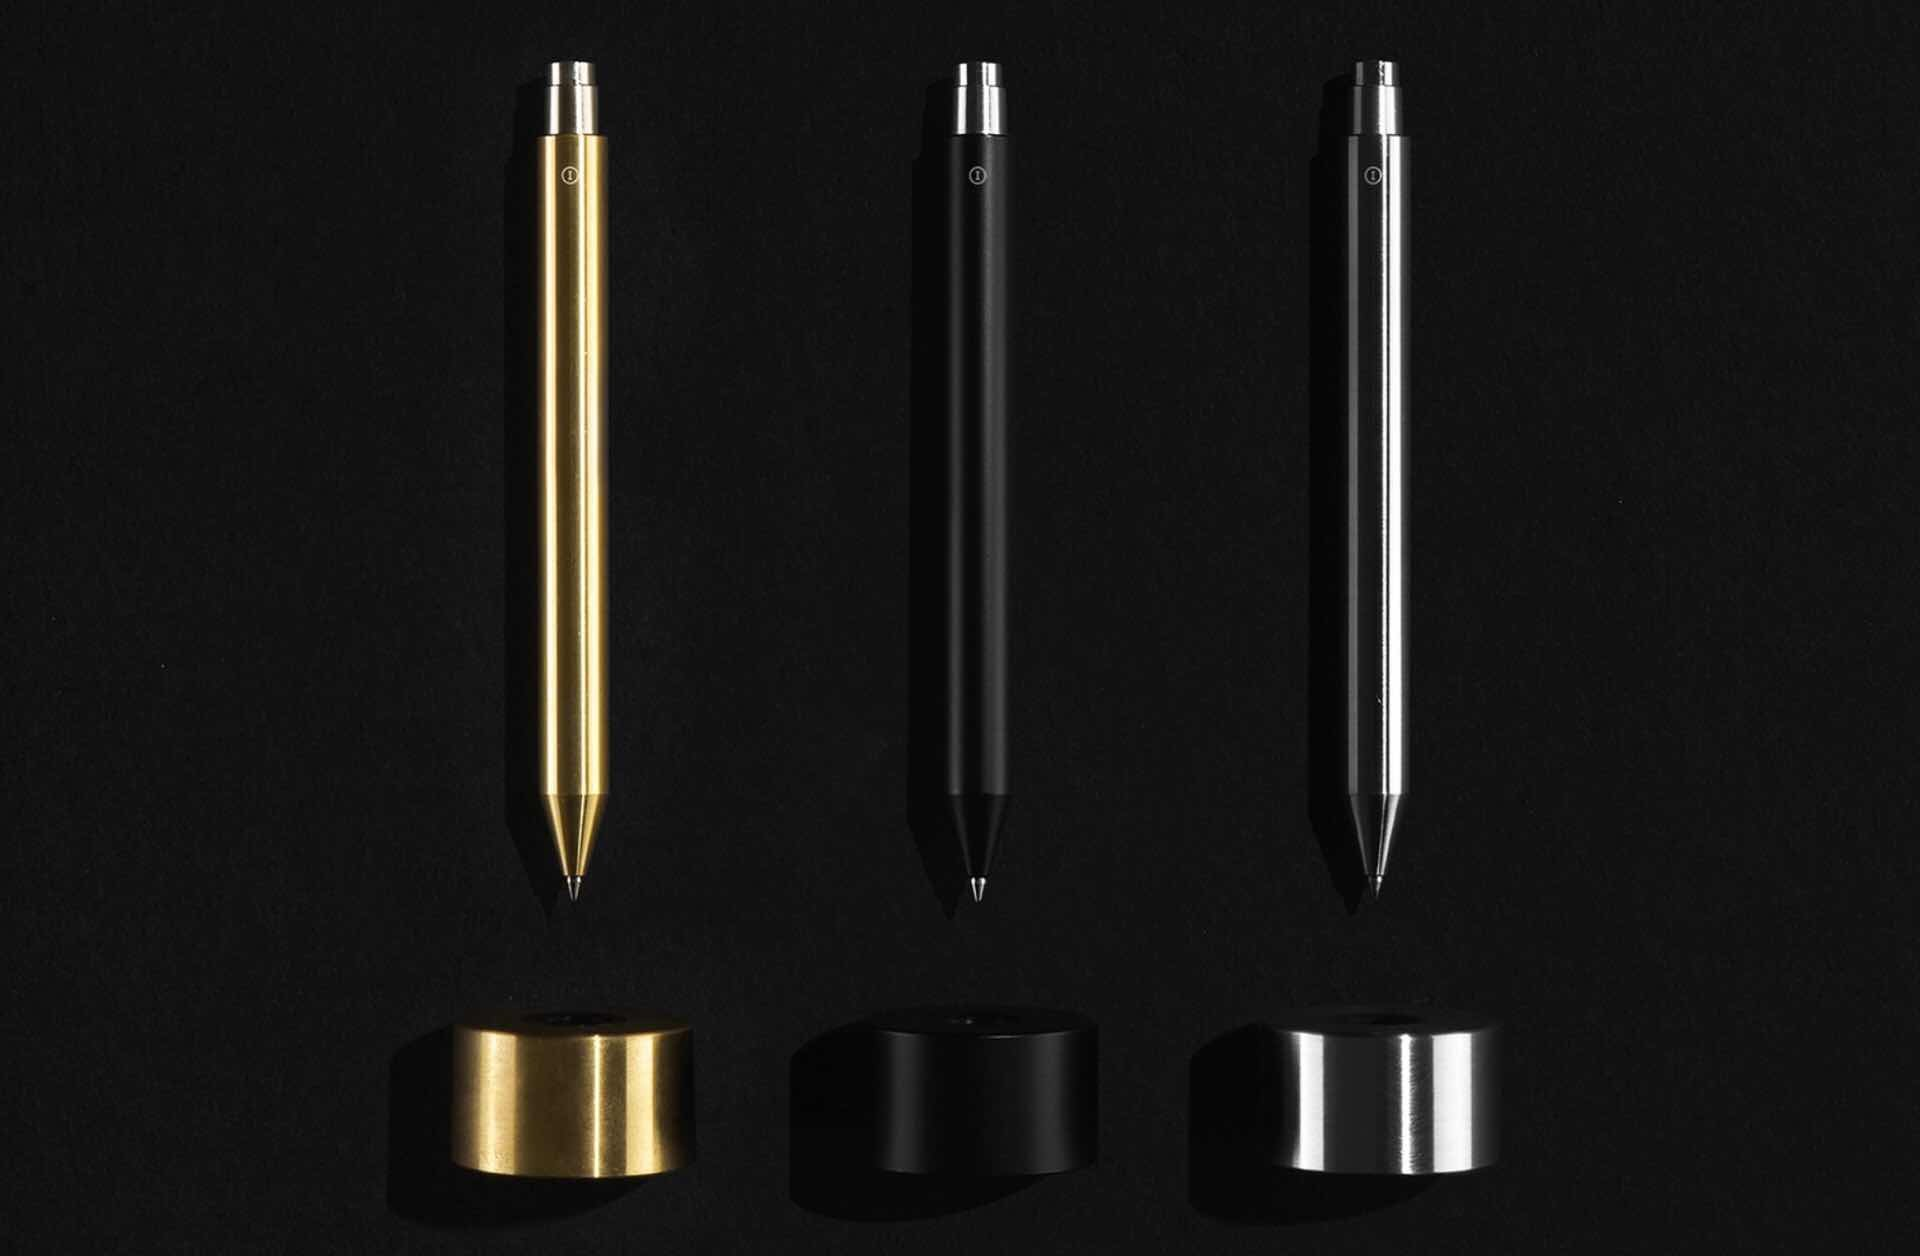 Inventery's Mechanical Pen + Stand collection. ($50–$90 per pen depending on size, and $50 per stand — all available in three colors)